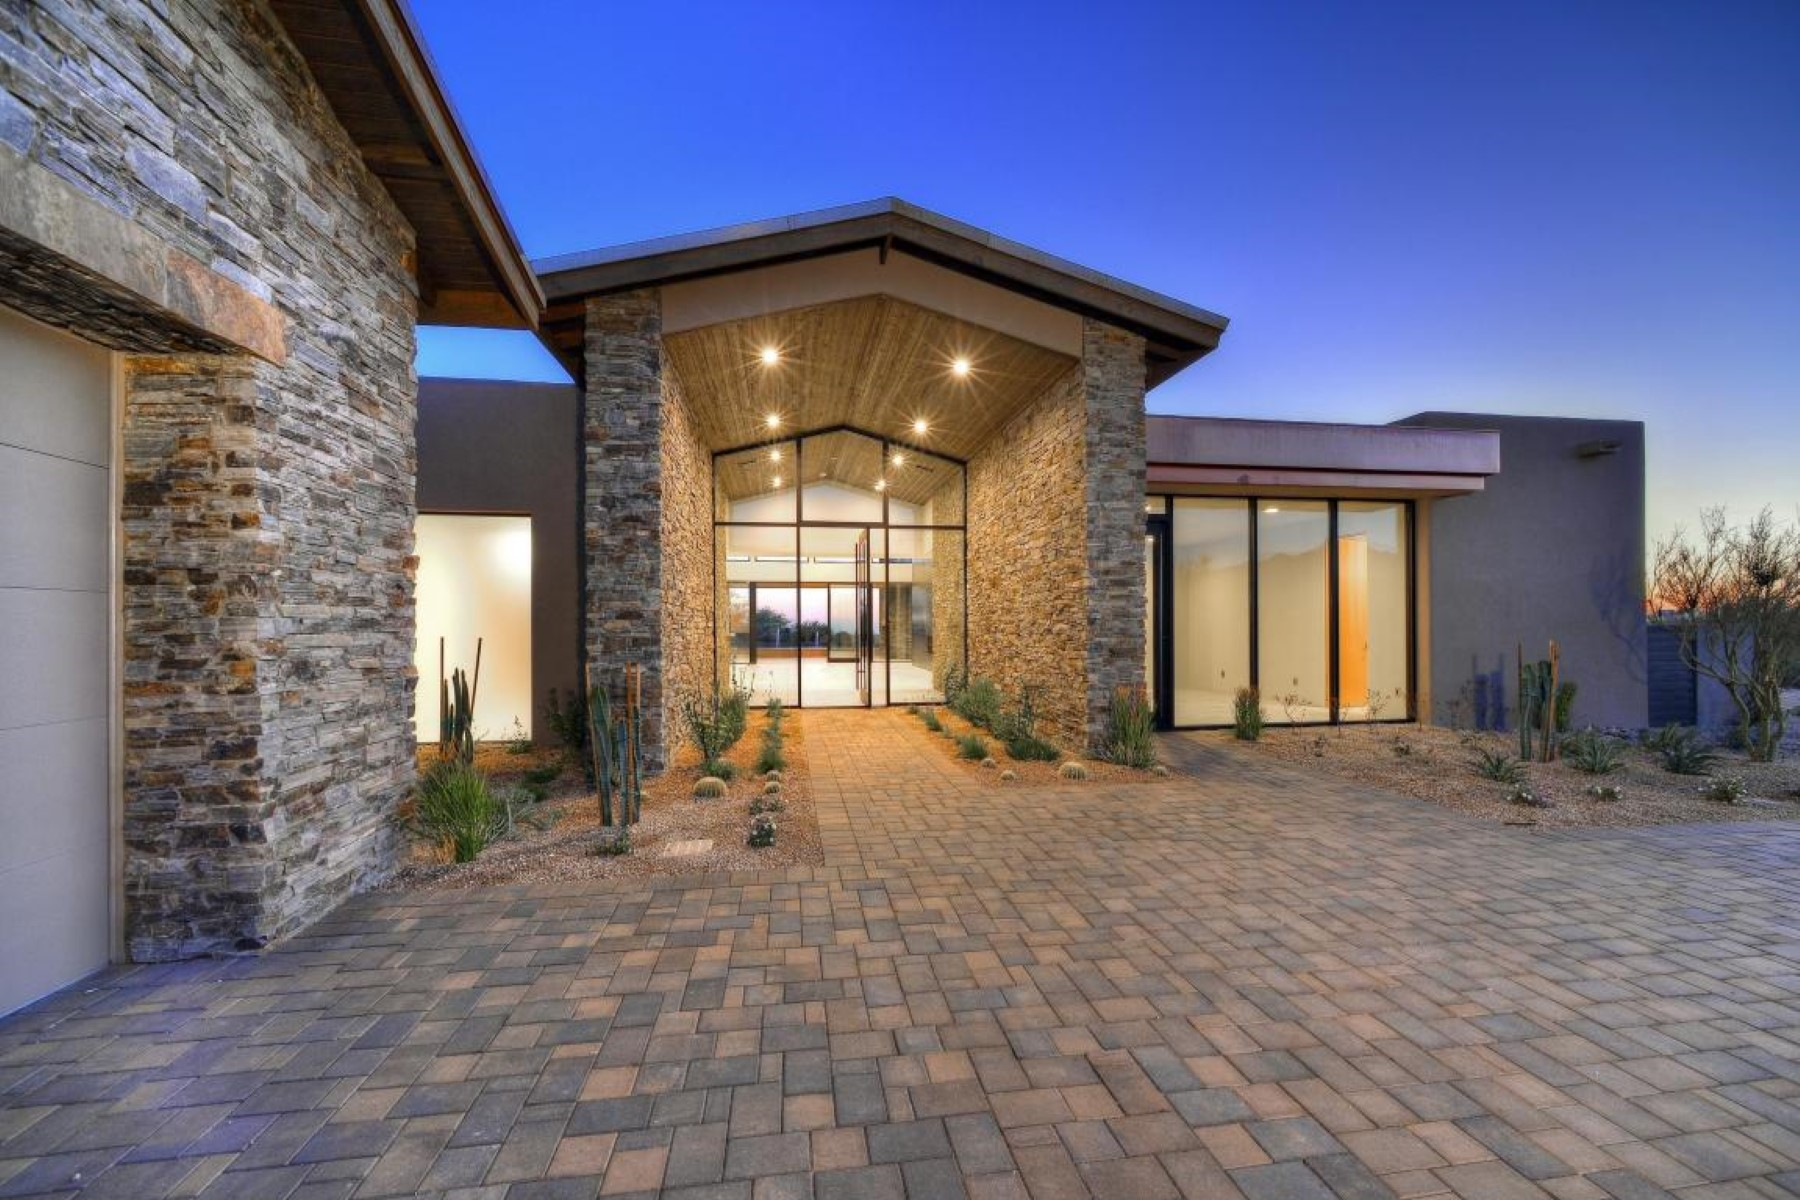 Single Family Home for Sale at Single level rustic contemporary in Desert Mountain 39801 N 100th St, Scottsdale, Arizona, 85262 United States